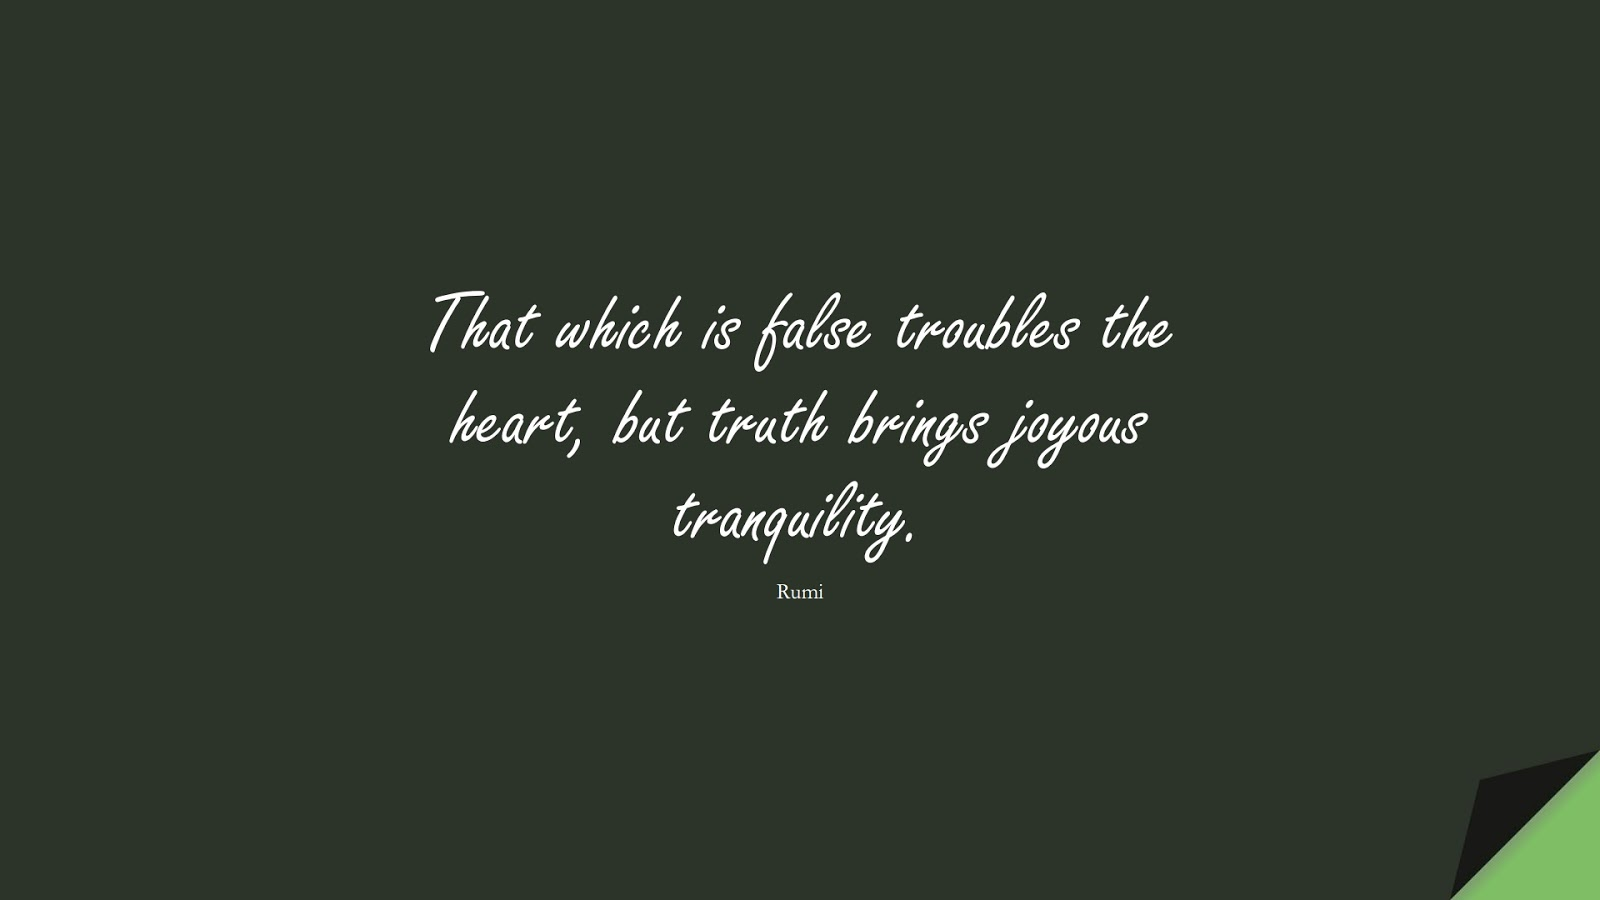 That which is false troubles the heart, but truth brings joyous tranquility. (Rumi);  #RumiQuotes